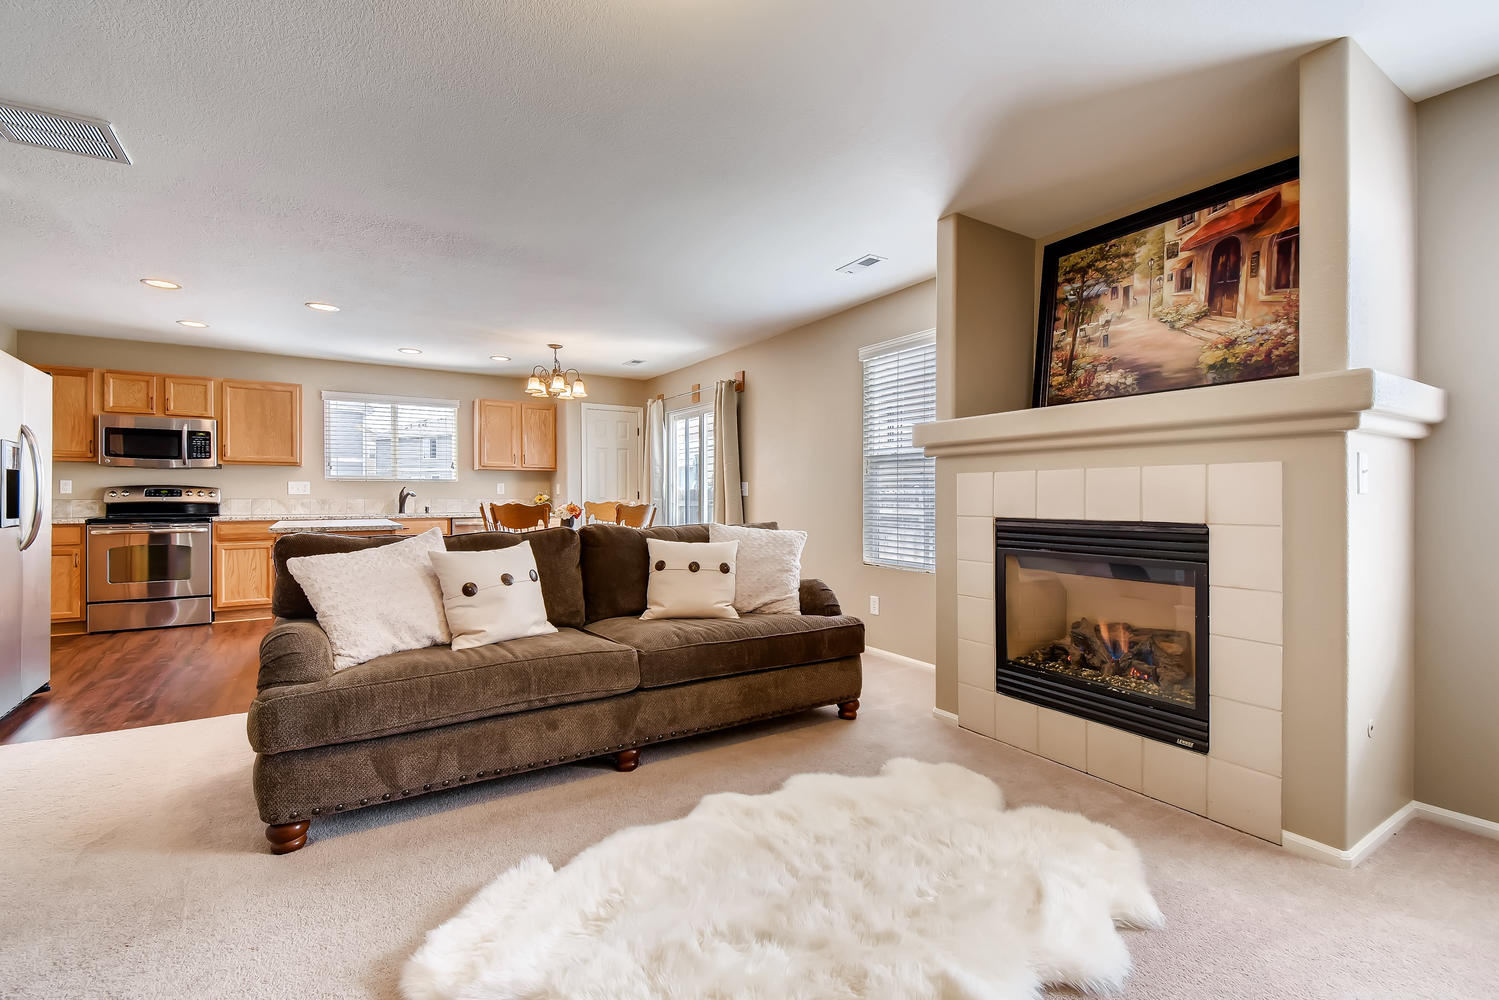 REAL ESTATE LISTING: 10595 Forester Pl Longmont CO Great Room and Kitchen